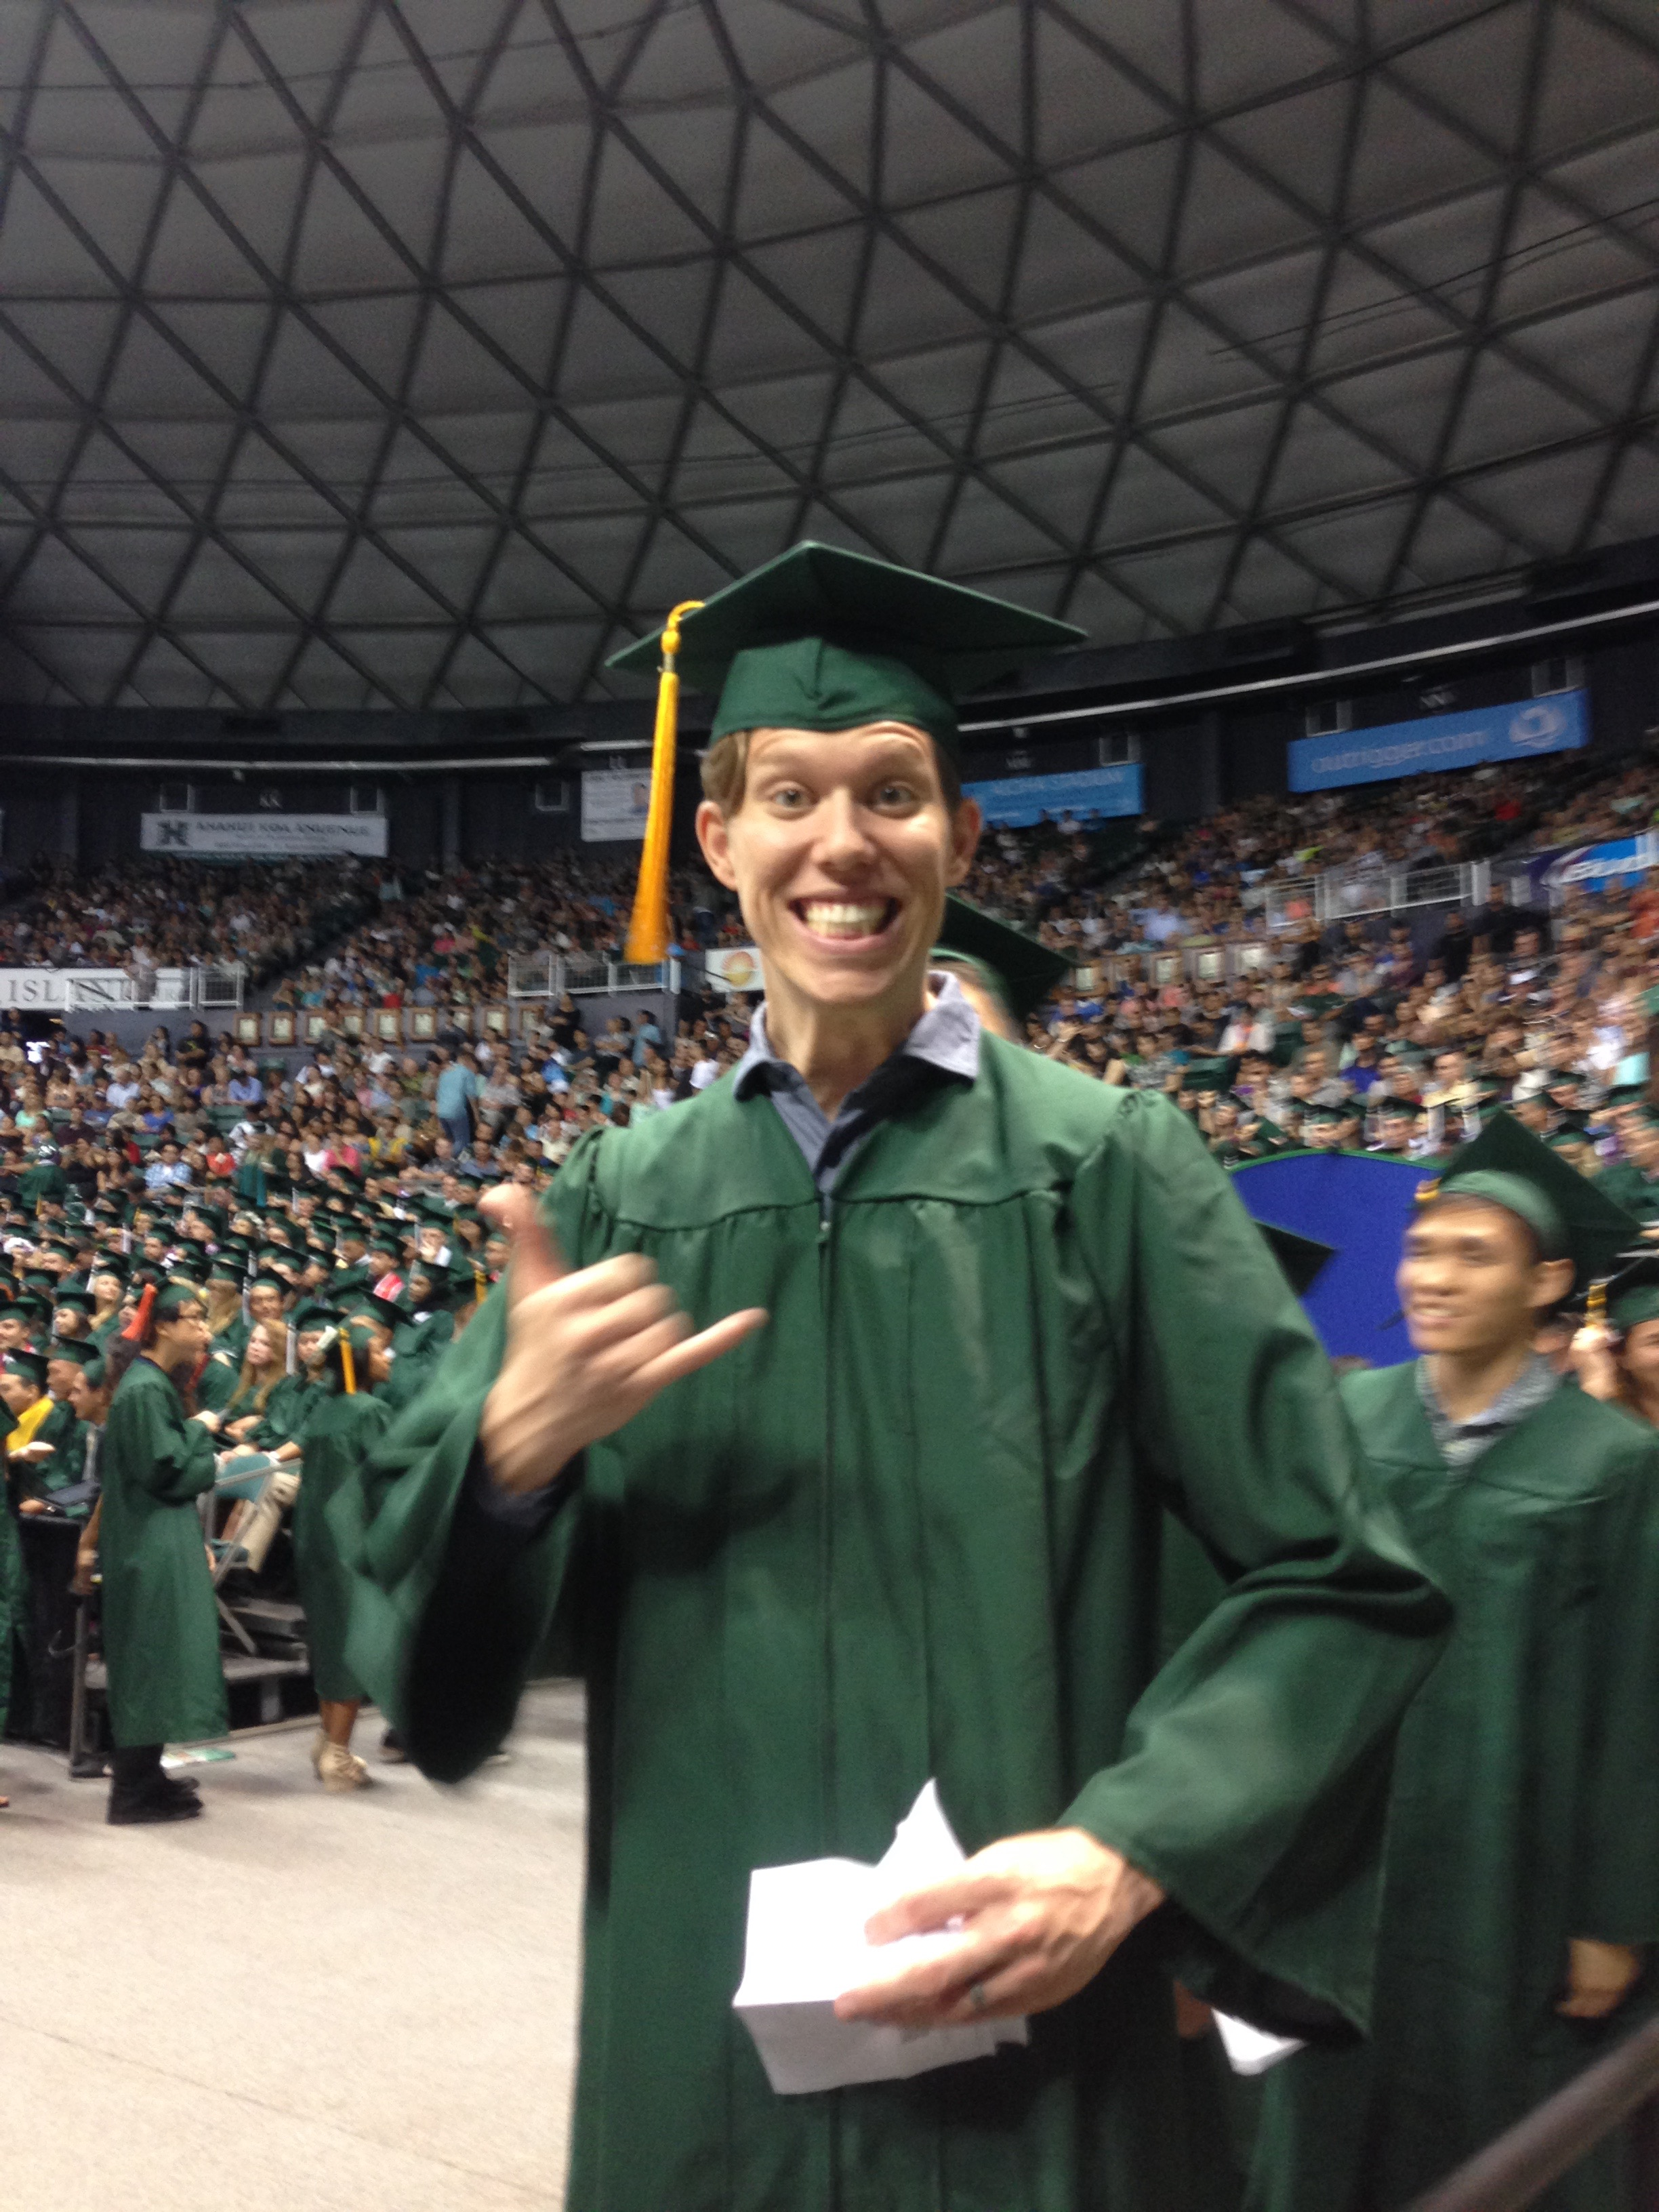 Joshua Weldon, B.S. in Information and Computer Sciences